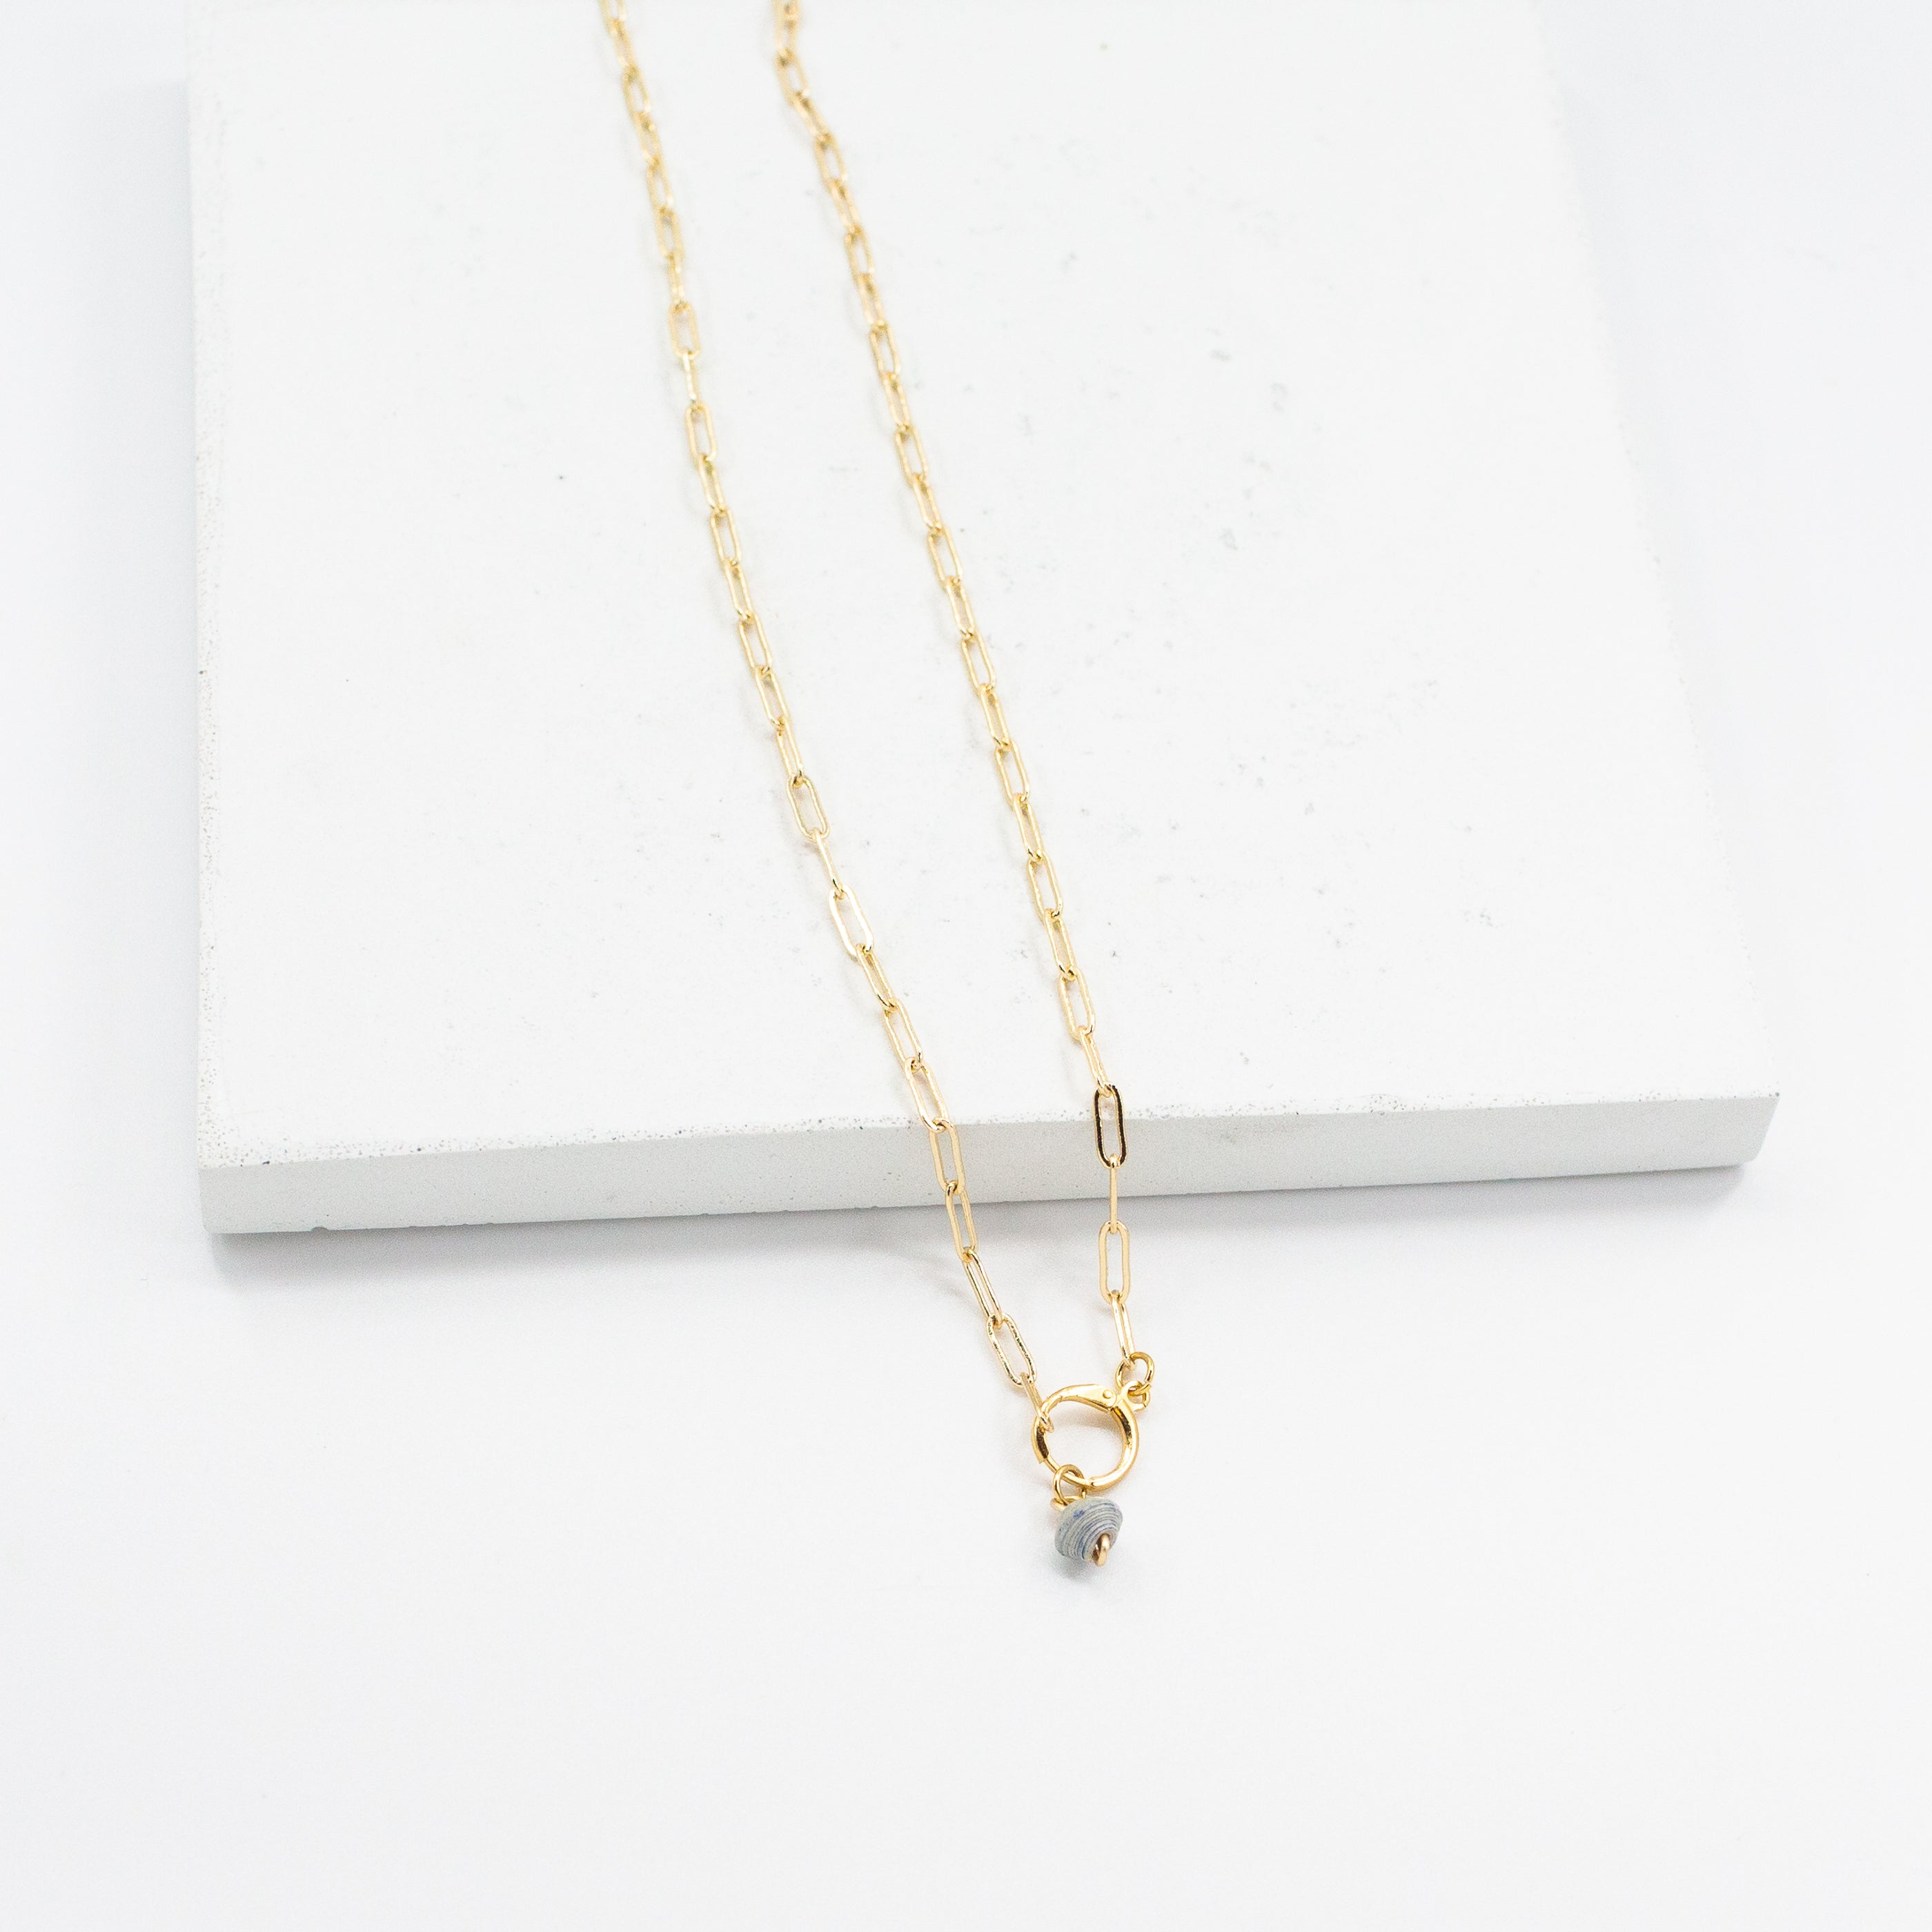 The Paperclip Chain Necklace with Birthstone Beads